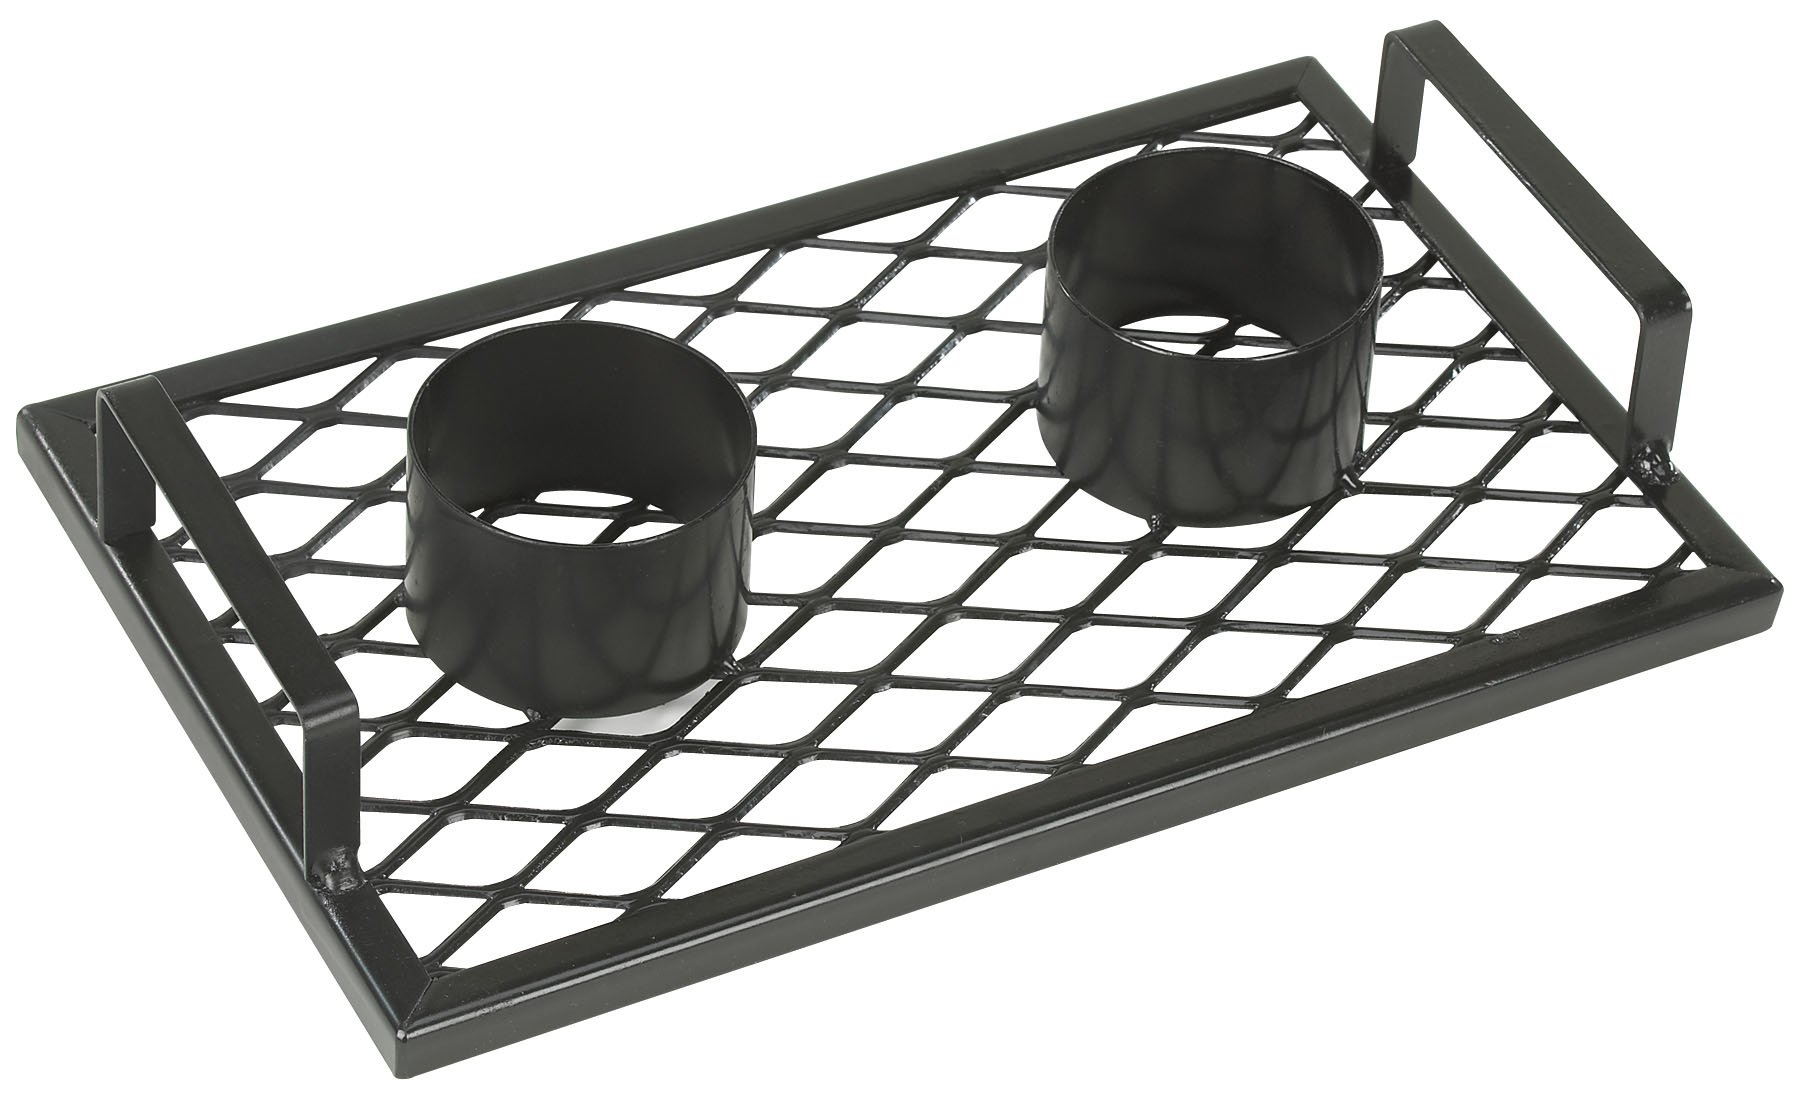 Stansport Double Happy Chicken Grill Cooker (15.5X8.5-Inch)